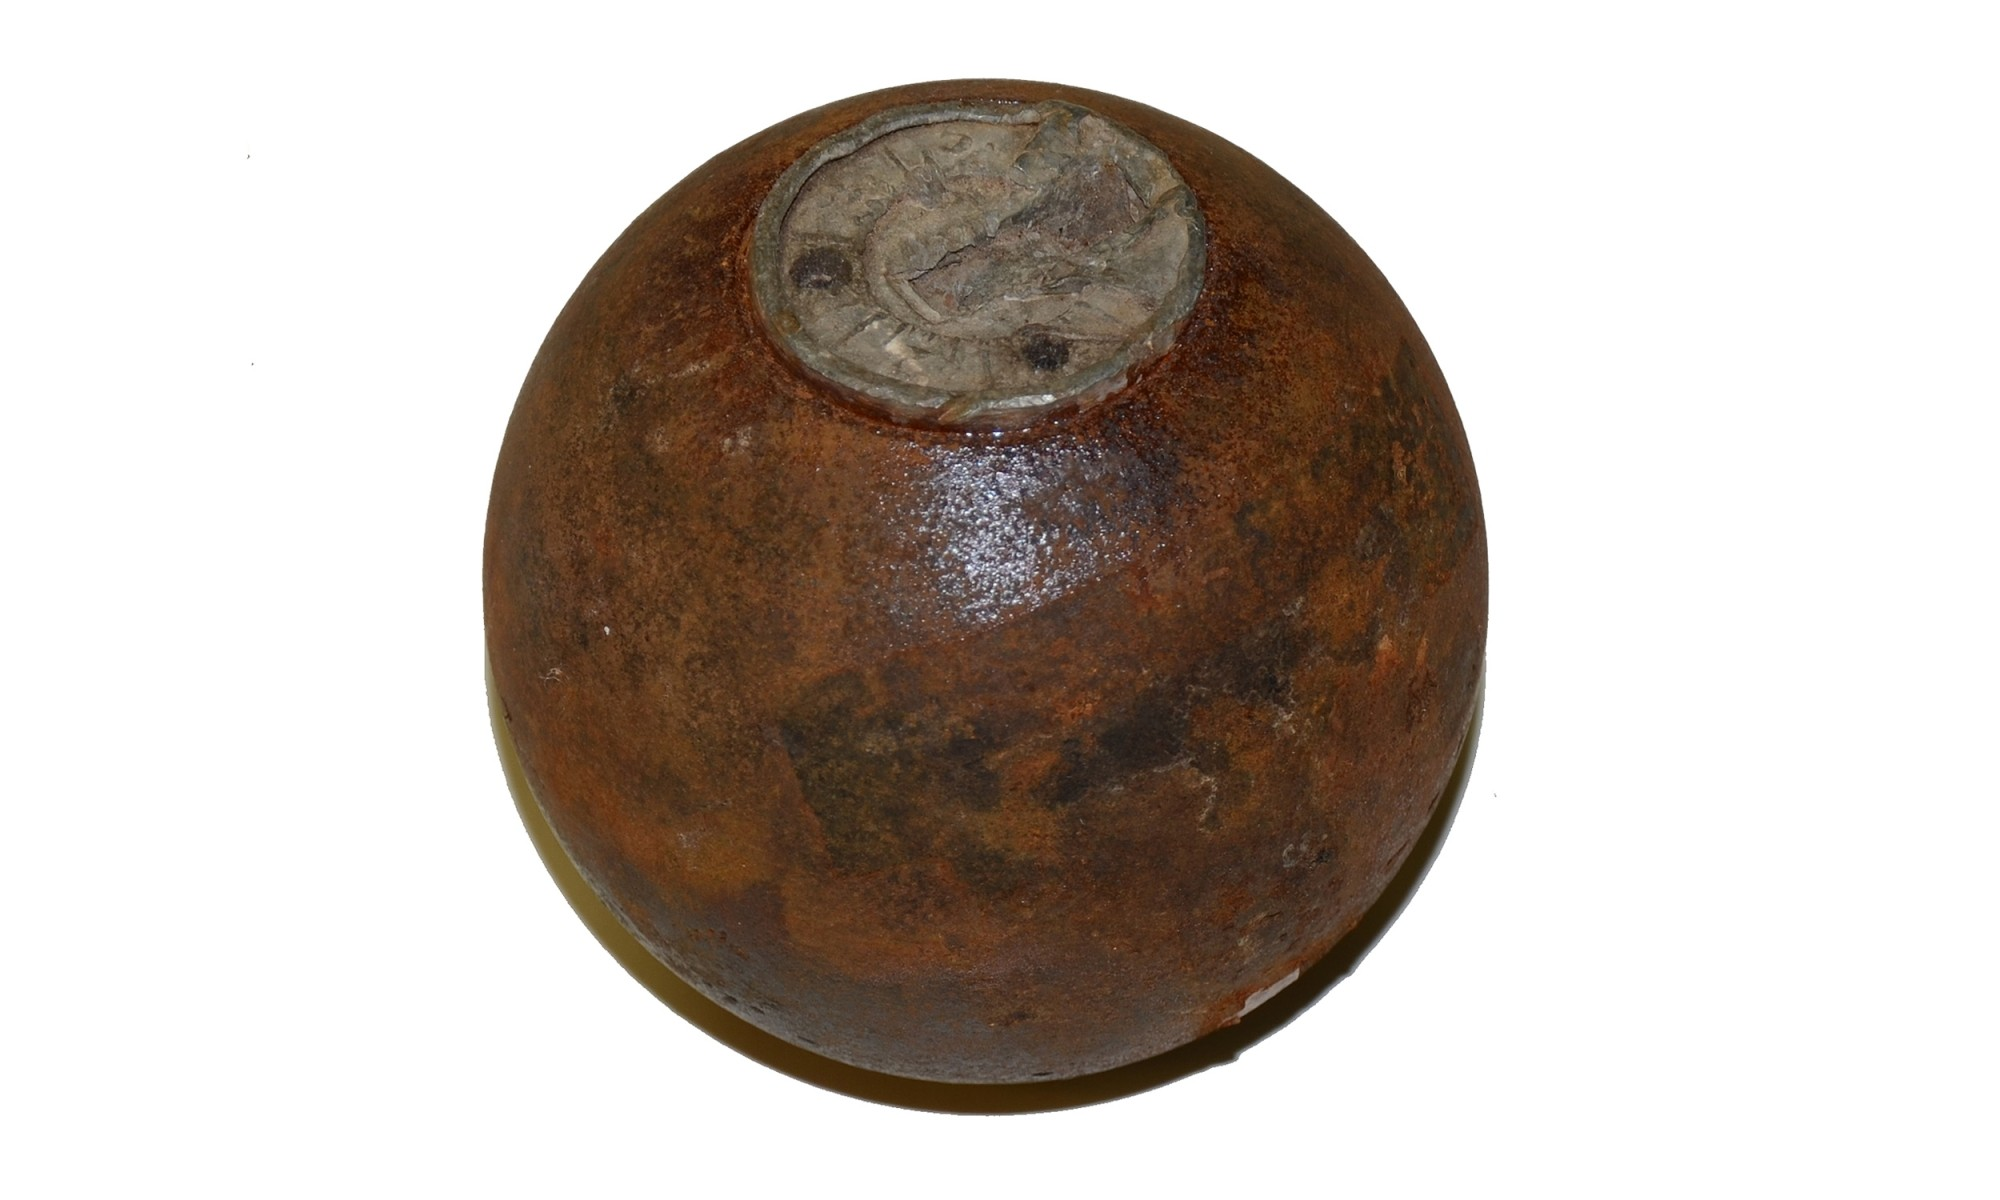 CONFEDERATE 3.67 INCH 6 PDR SPHERICAL SHELL WITH CONFEDERATE COPY OF A BORMANN FUSE